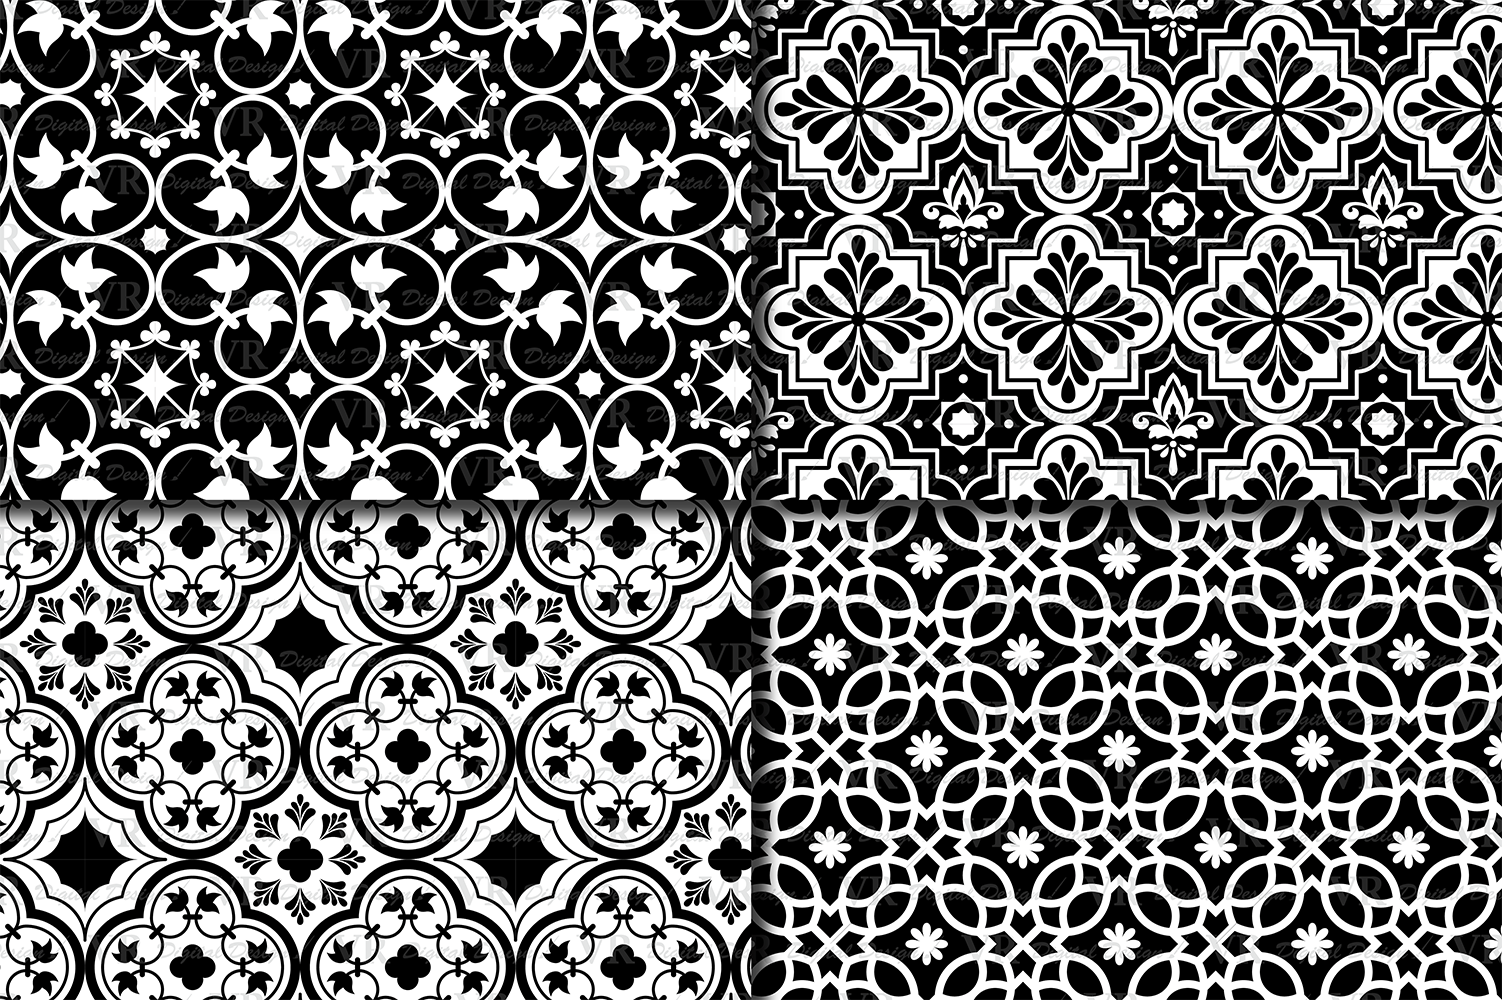 Black and White Moroccan Digital Paper Pack / Ethnic Tribal Geometric Ornamental Digital papers / Moroccan backgrounds / Scrapbooking paper example image 2